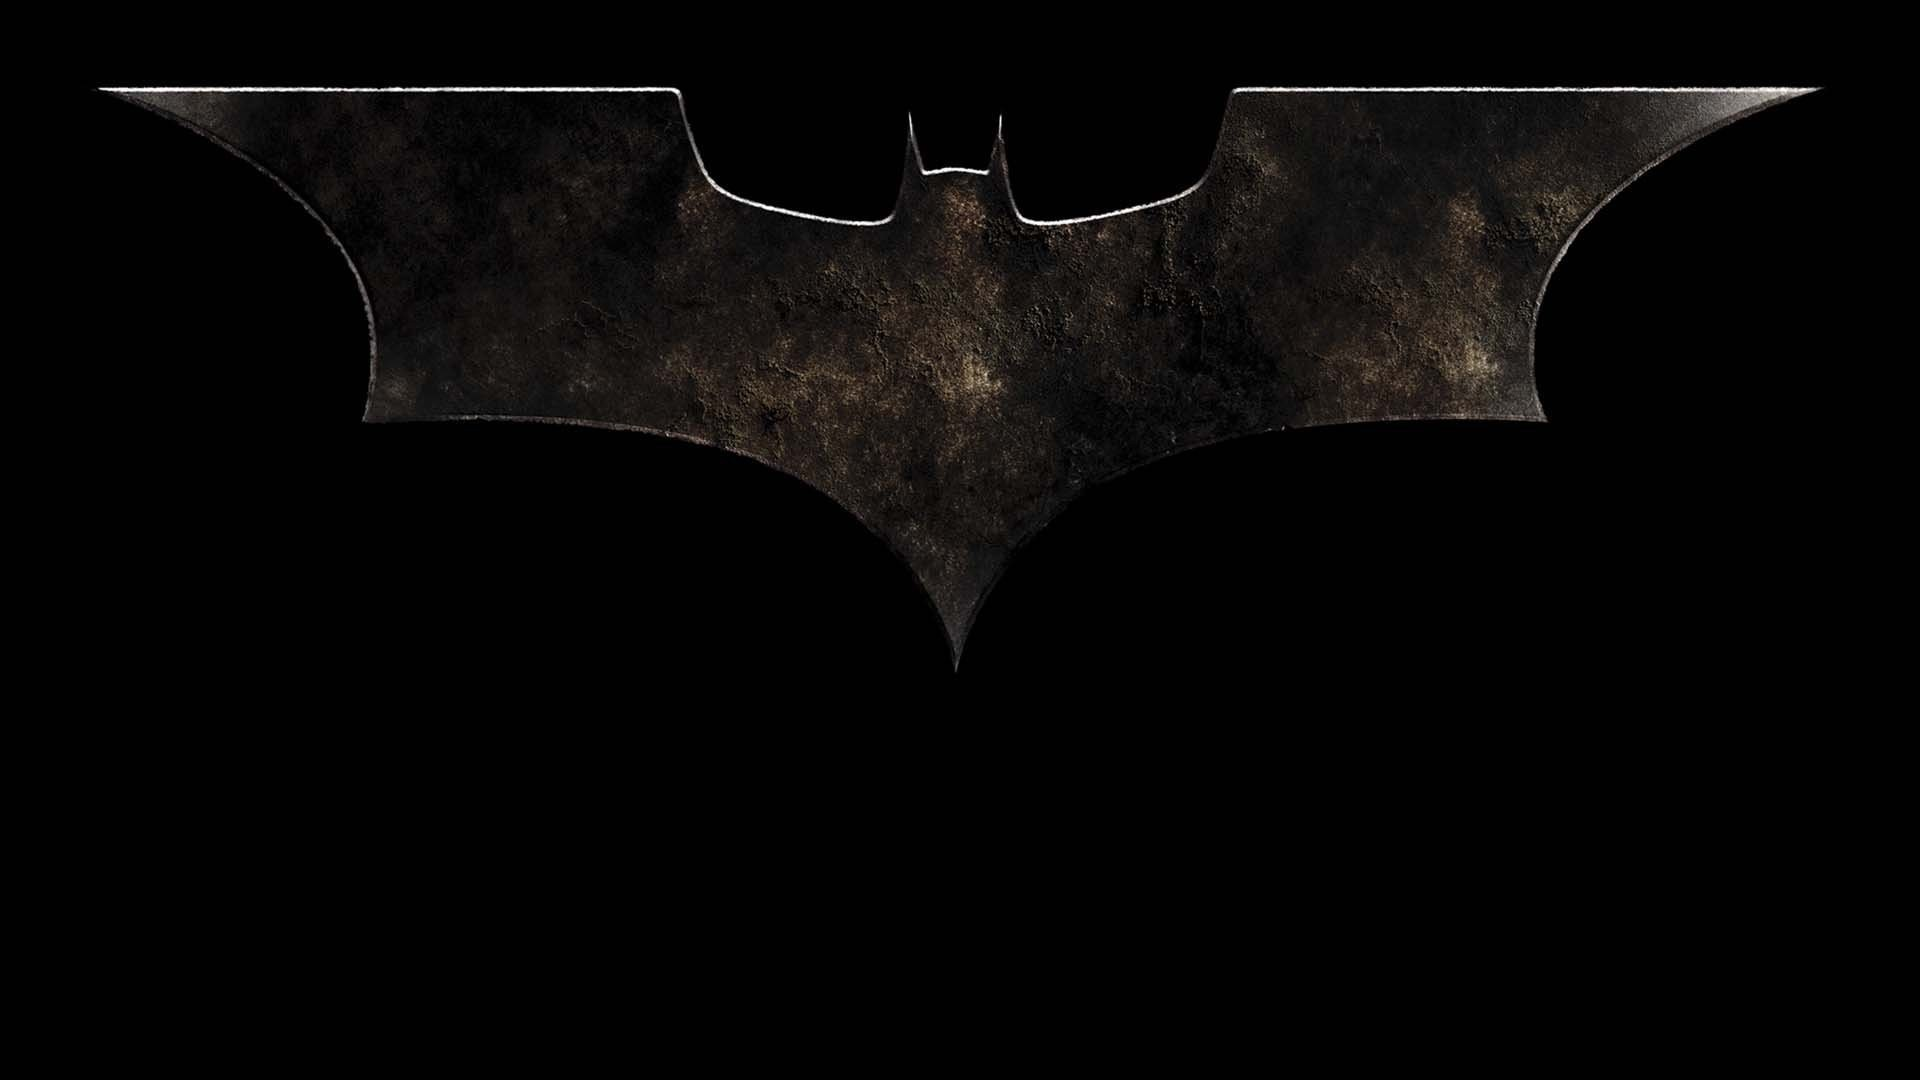 Clip Arts Related To : Batman Begins 13049 Hd Wallpapers in Movies